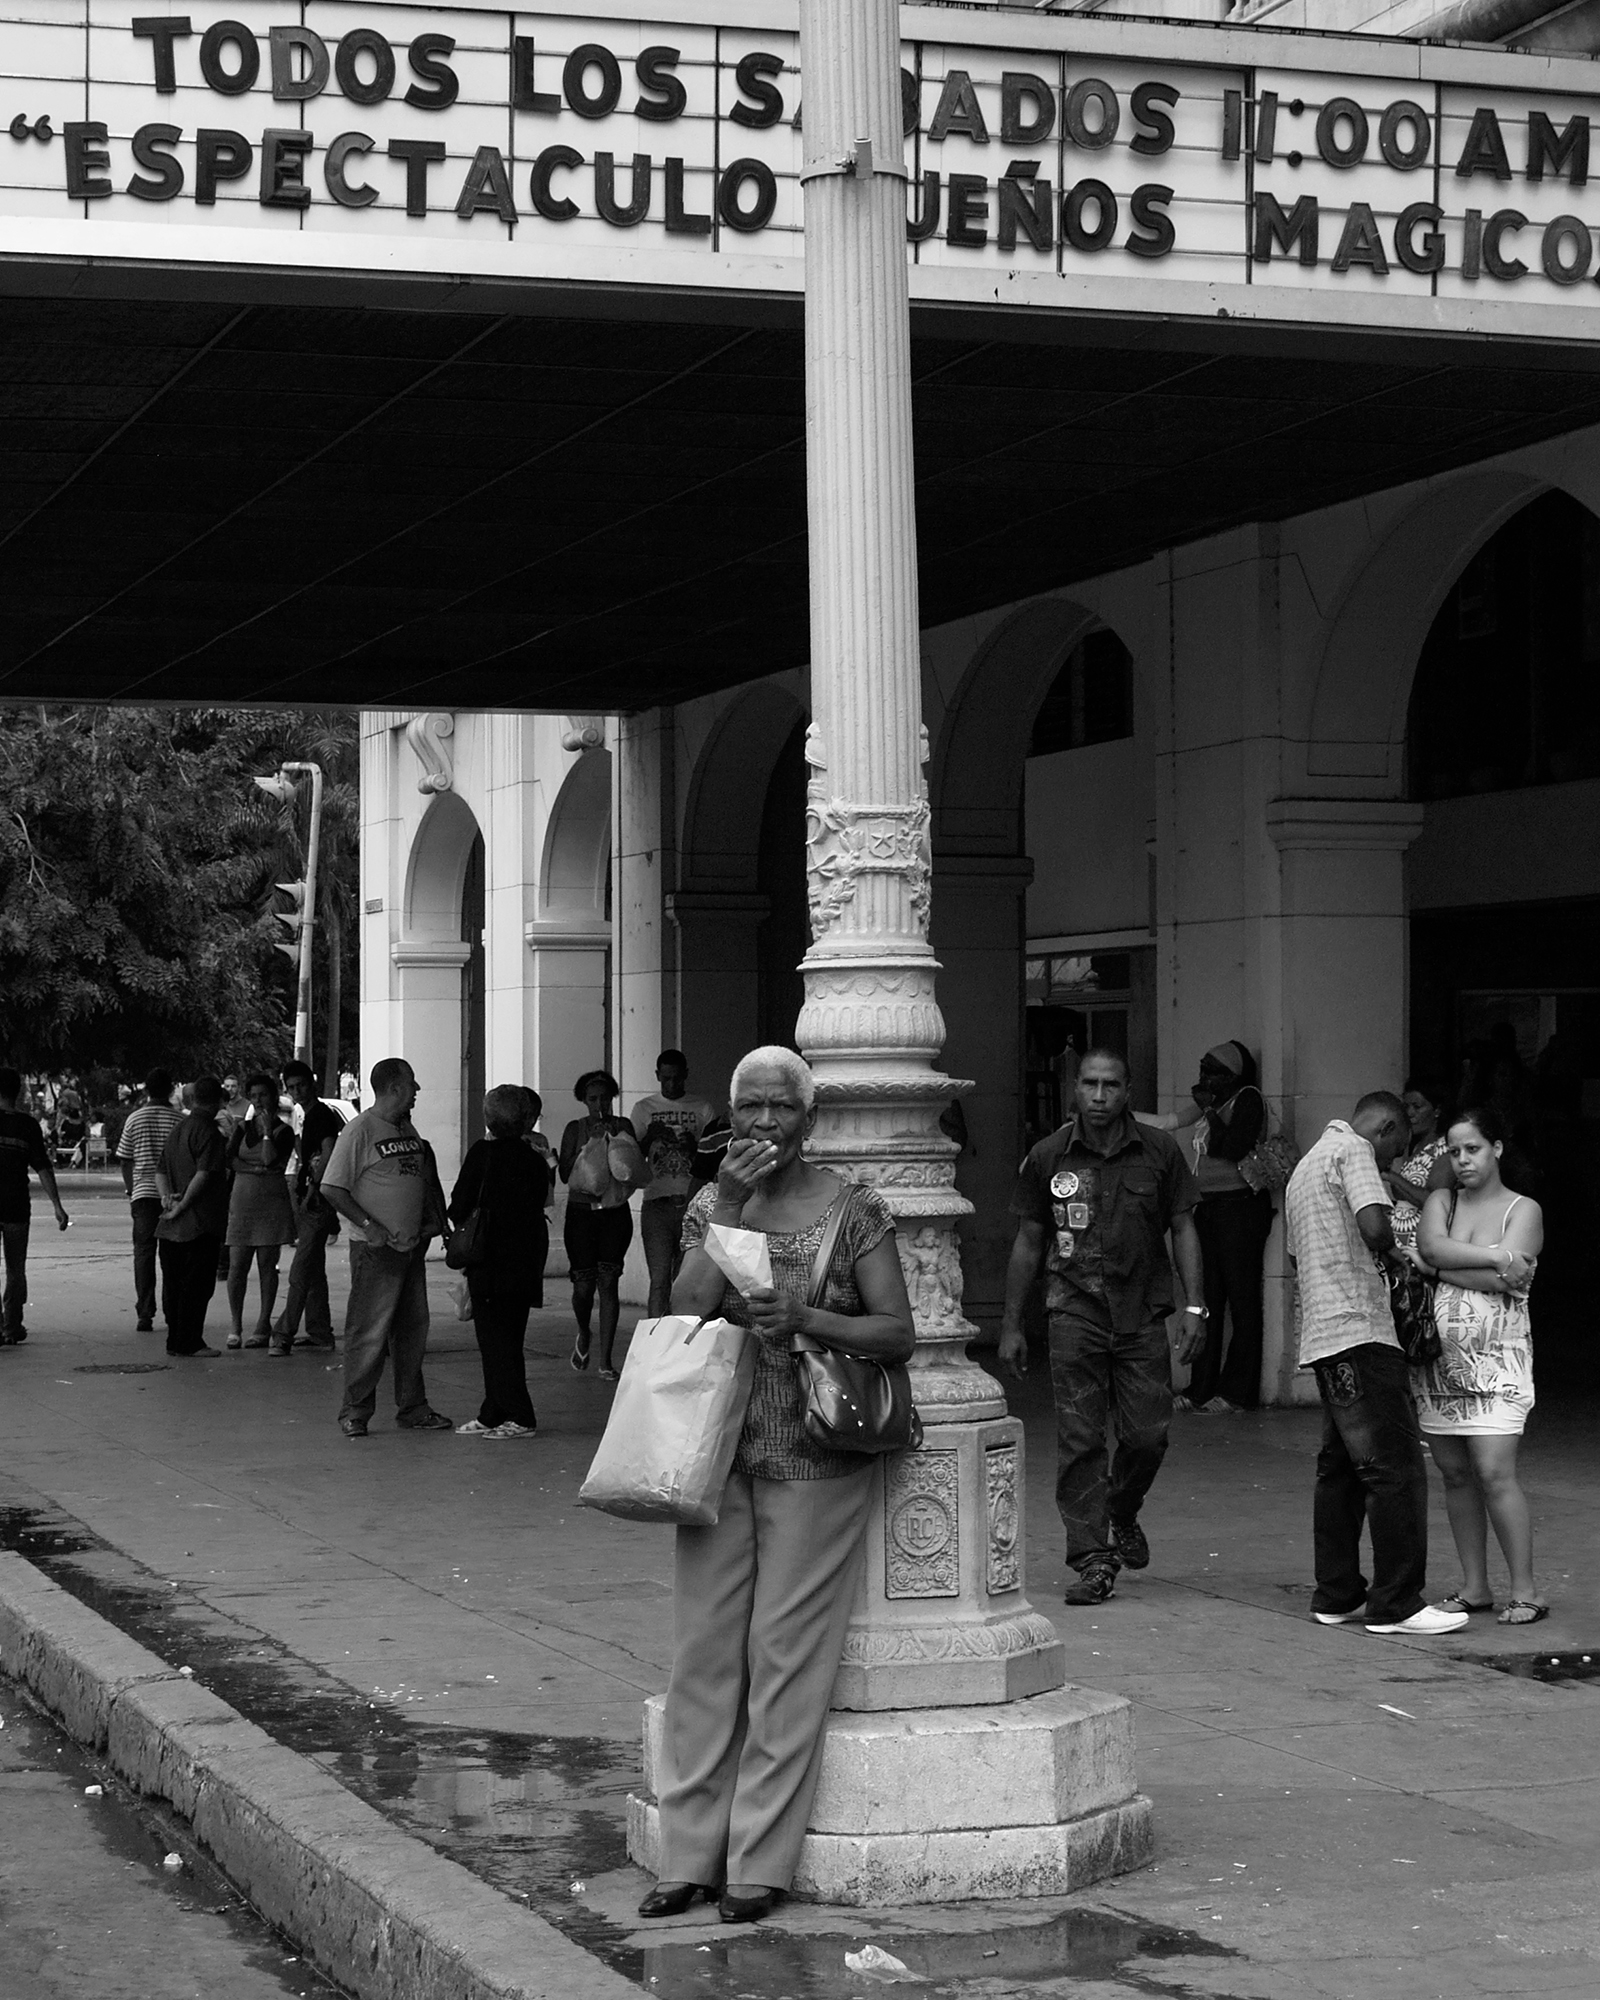 Peanuts seller out of Payret movie theater. Havana, Cuba 2010